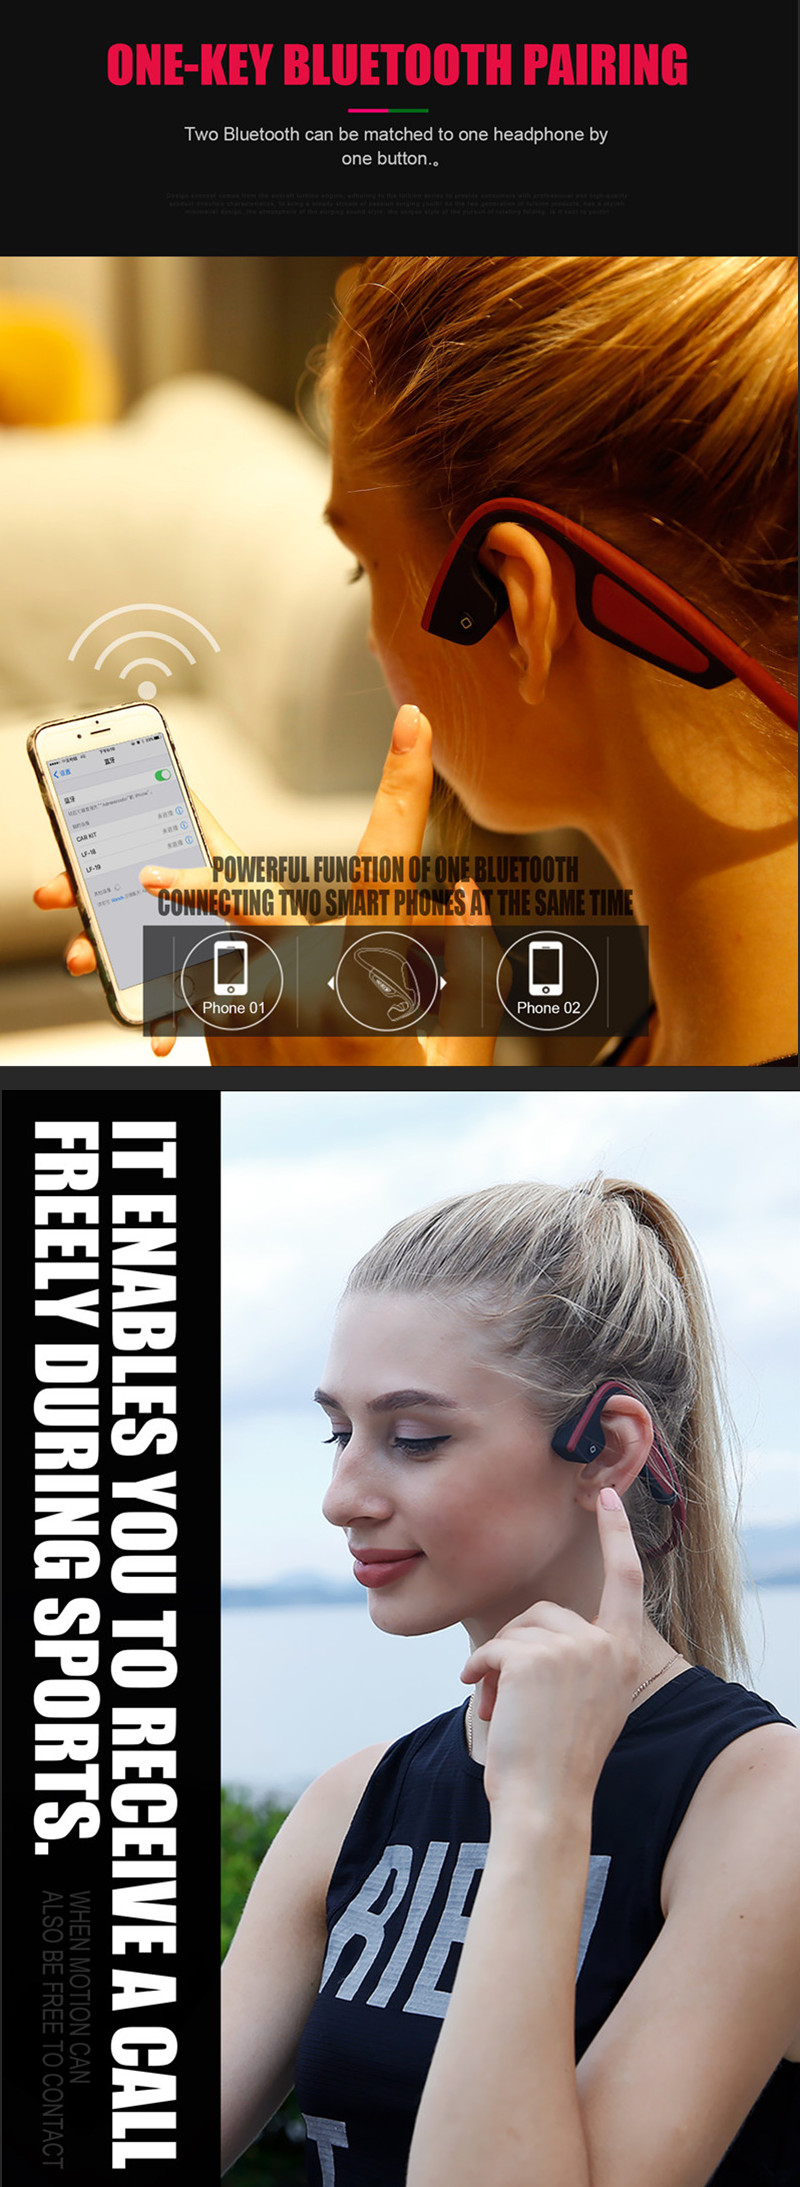 S.Wear LF-19 Bone Conduction Outdoor Sweat-proof Light Weight bluetooth Earphone Headset for Phone